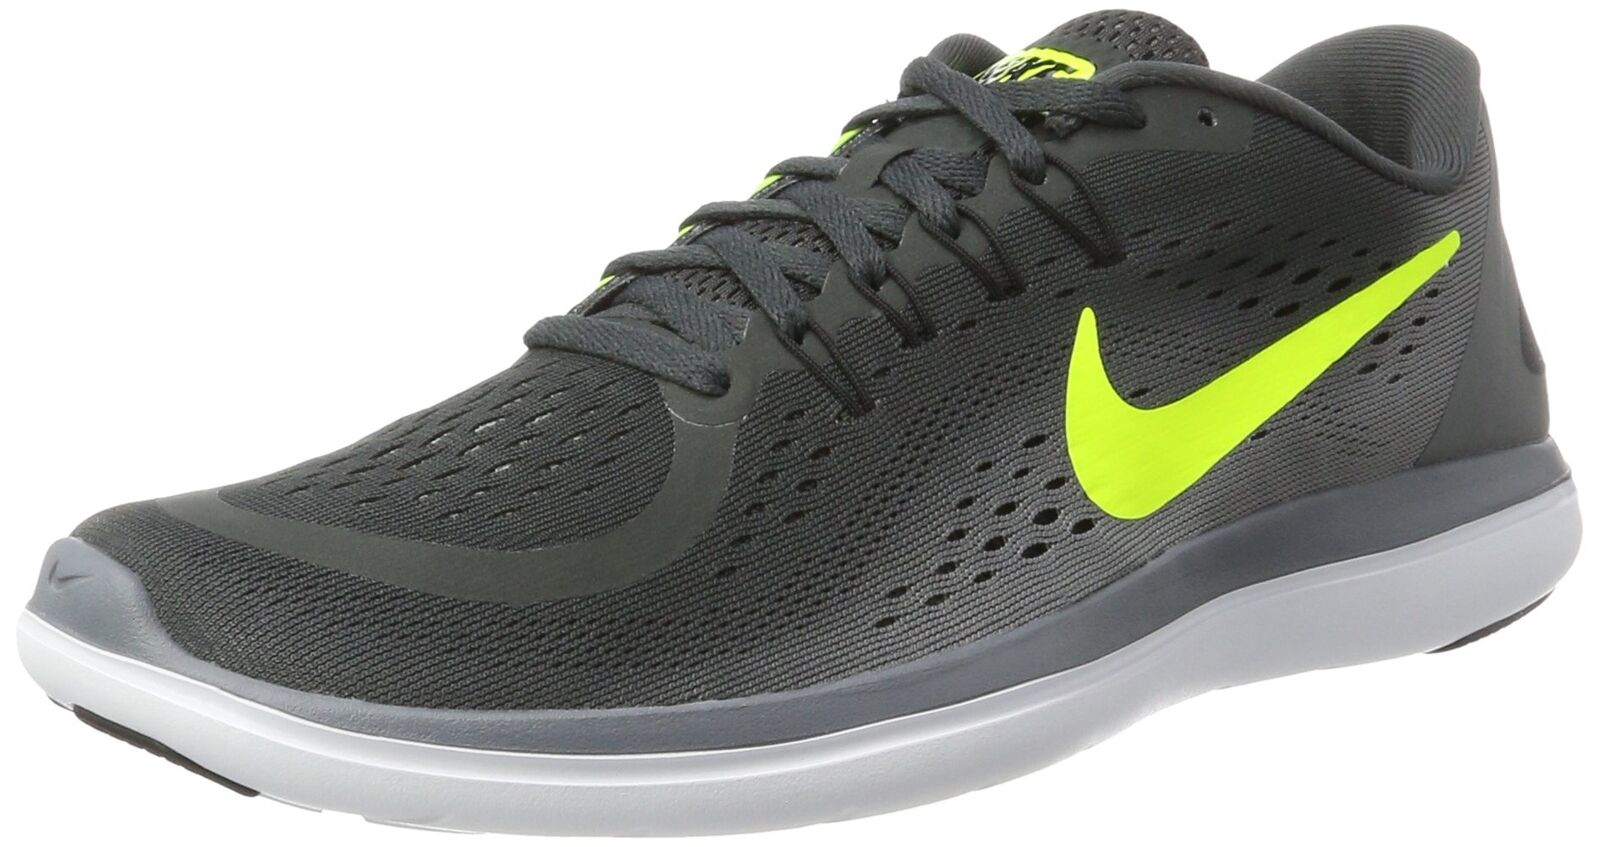 NIKE Men's Flex 2017 RN Anthracite/Volt/Cool Grey/Black US 10.5 D(M) US Grey/Black 6e79aa